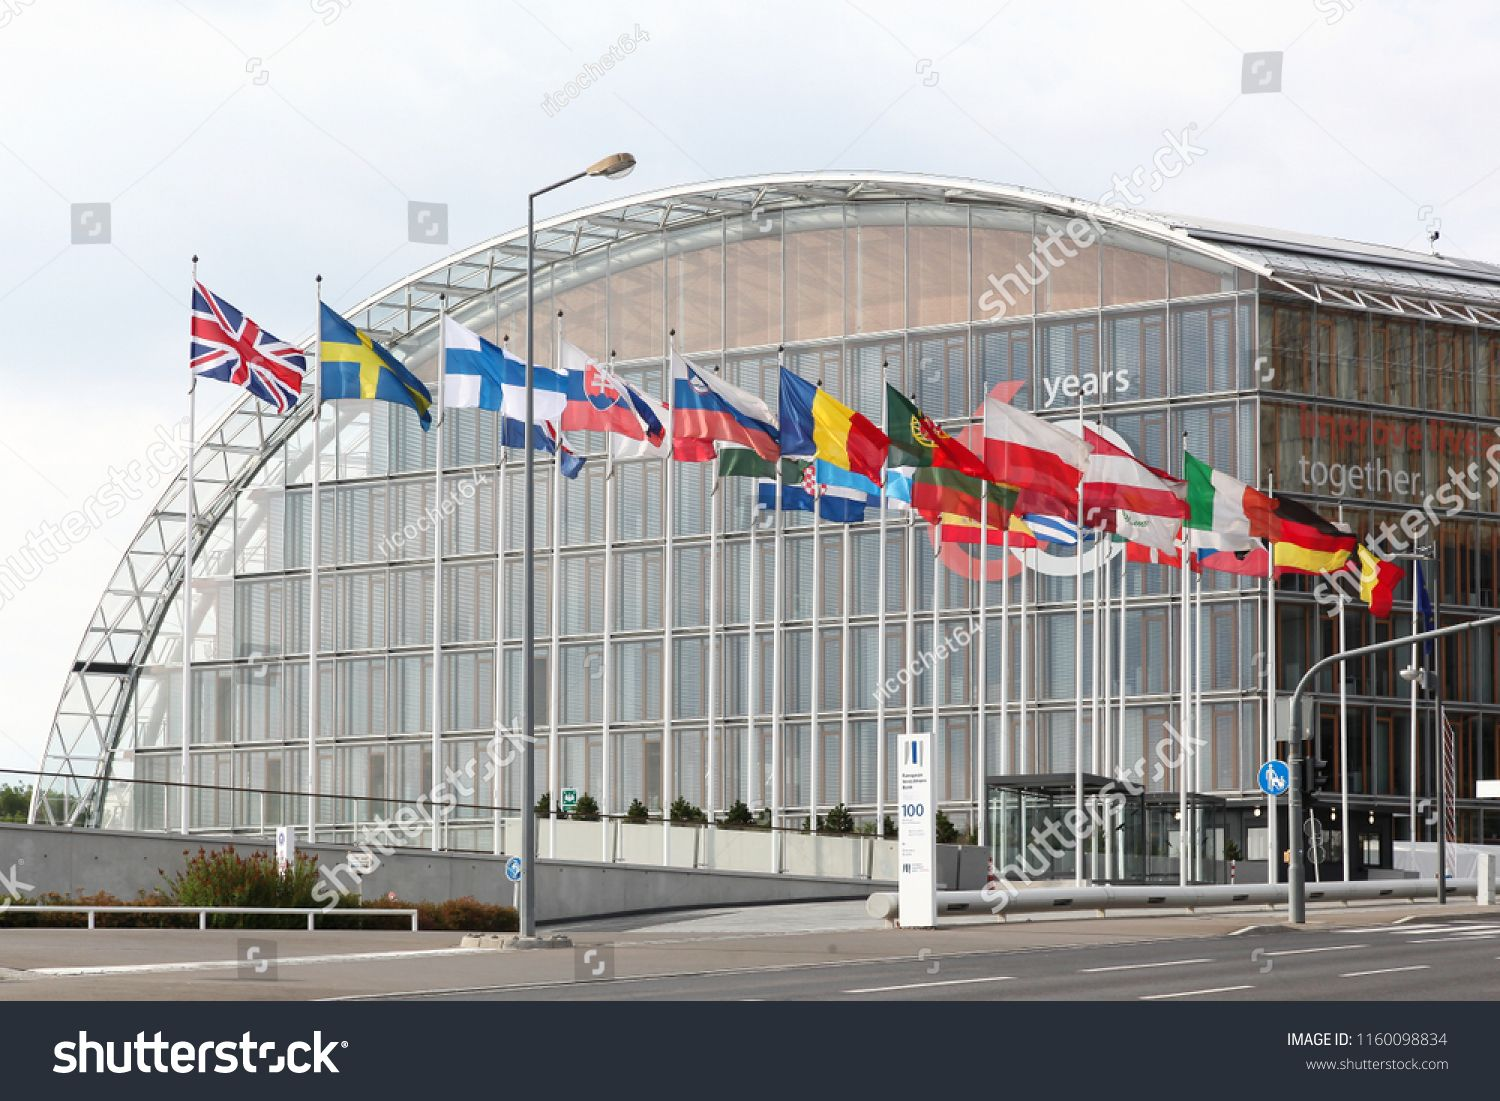 Kirchberg Luxembourg July 21 2018 European Investment Bank Building In Luxembourg The European Investment Bank Is The European Union S Nonprofit L Kirchberg